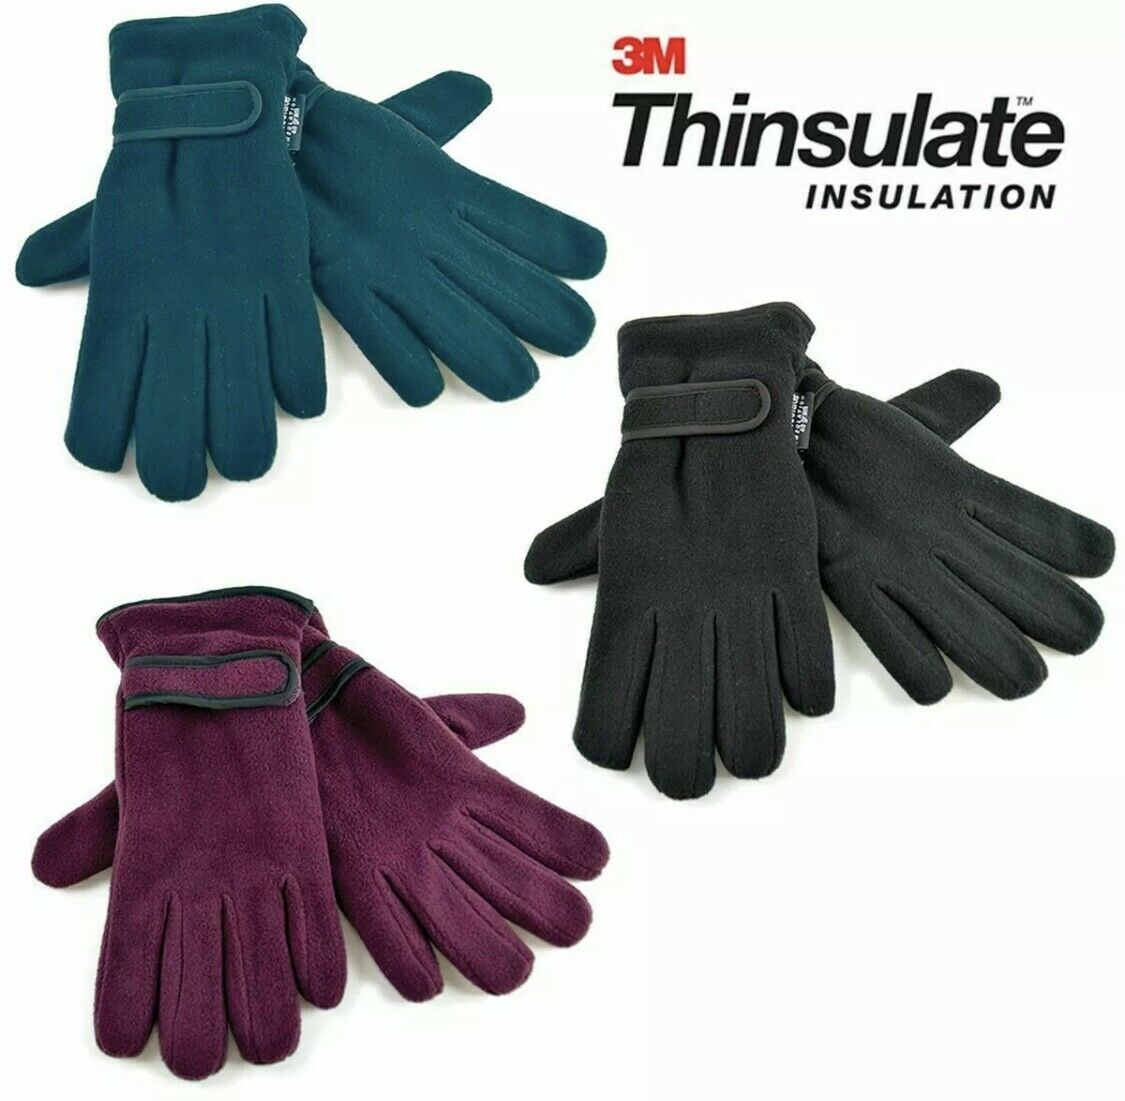 Ladies Thinsulate Gloves (3M) with Wrist Strap 3 Colours Black, Blue, Red